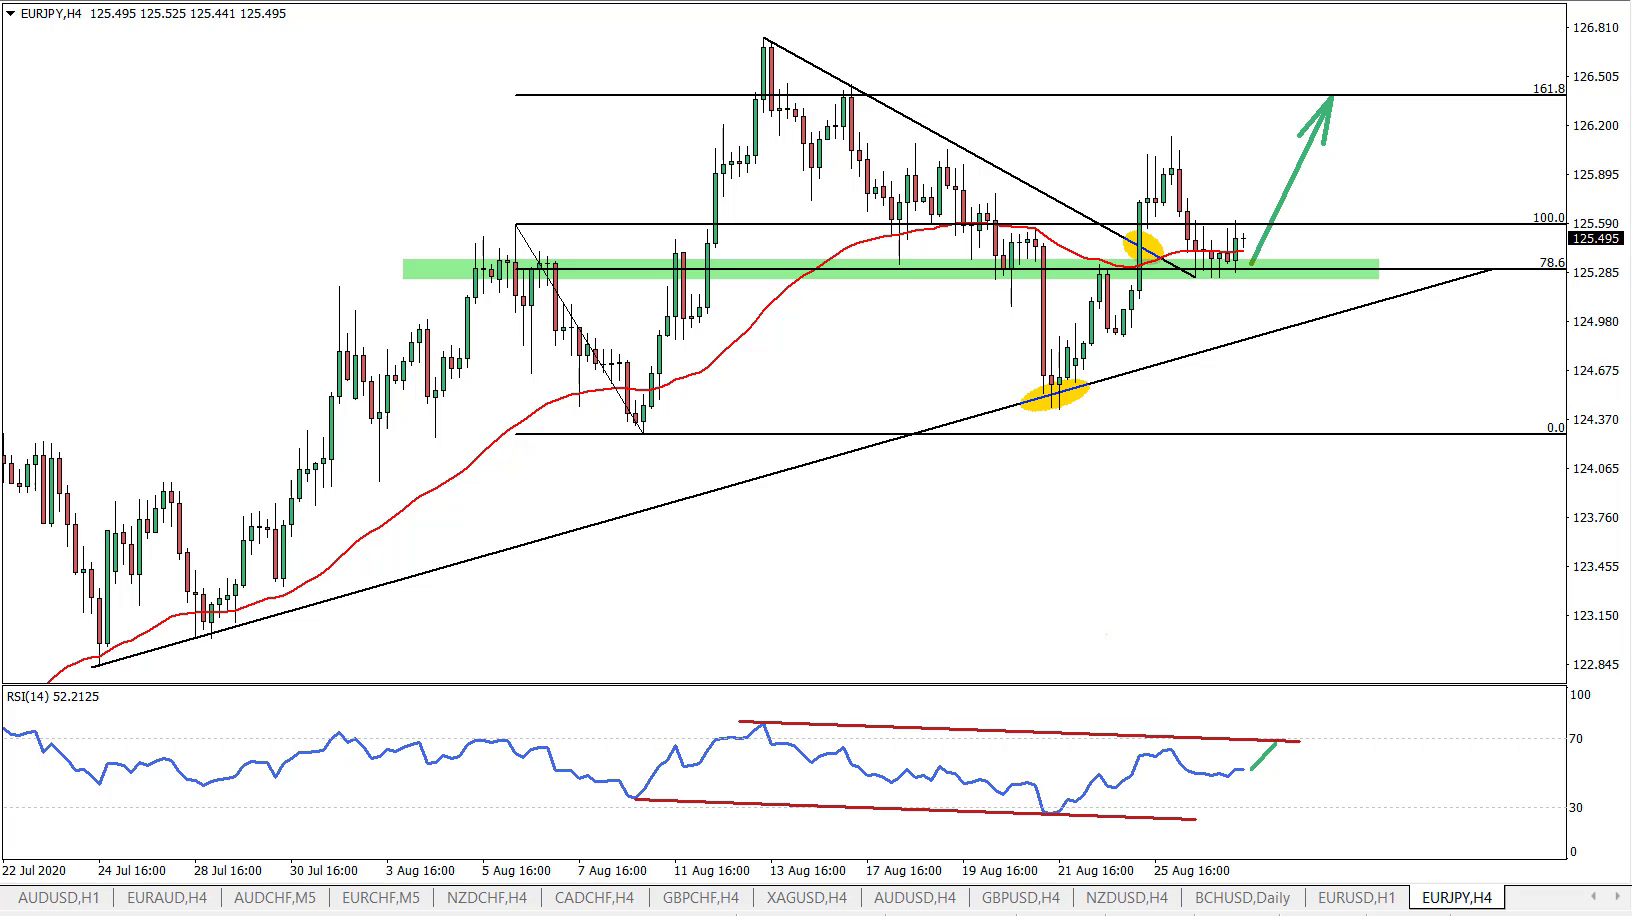 EURJPY 4hour chart August 27th 2020